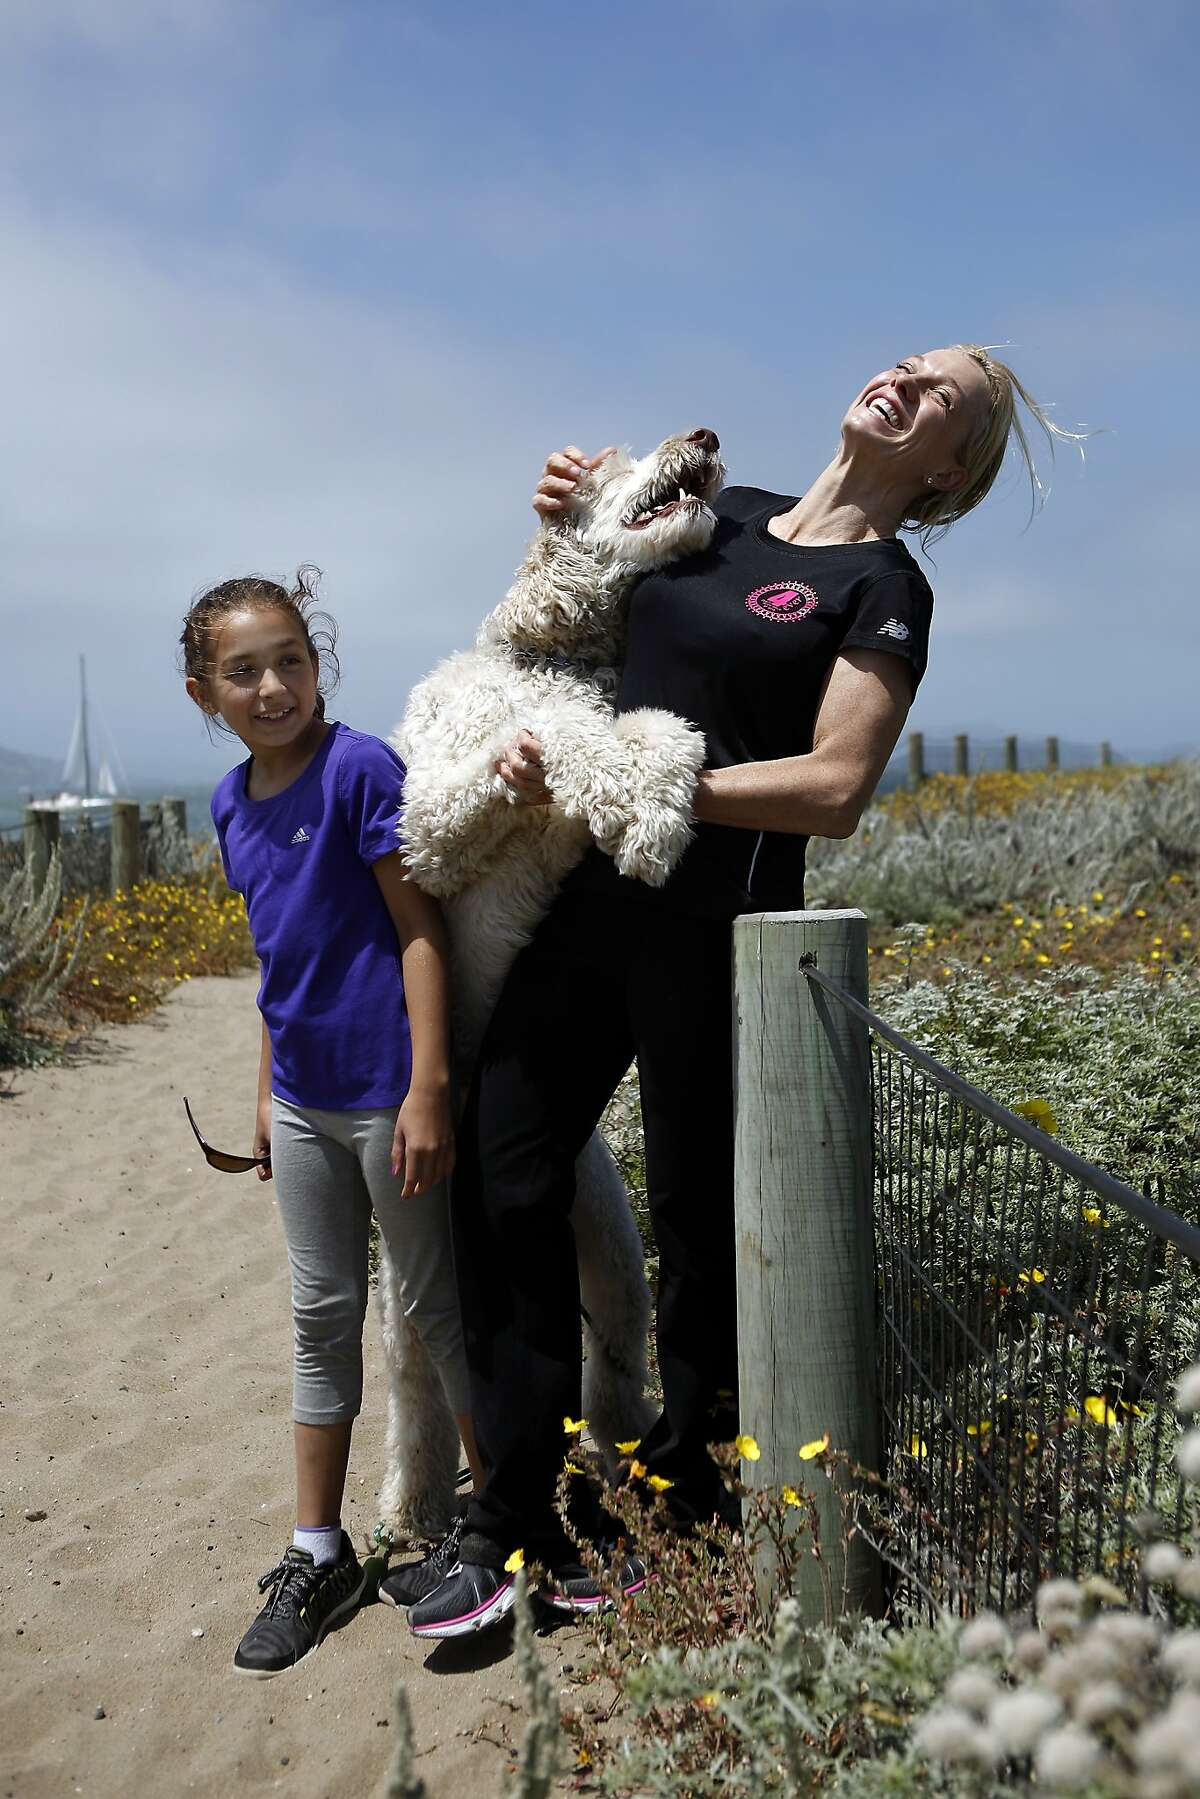 Dr. Pamela Munster, a UCSF breast cancer specialist diagnosed with breast cancer, poses for a portrait with her daughter Maya Daud, 10, and their dog Sampson at Crissy Field in San Francisco, CA, Saturday June 7, 2014.